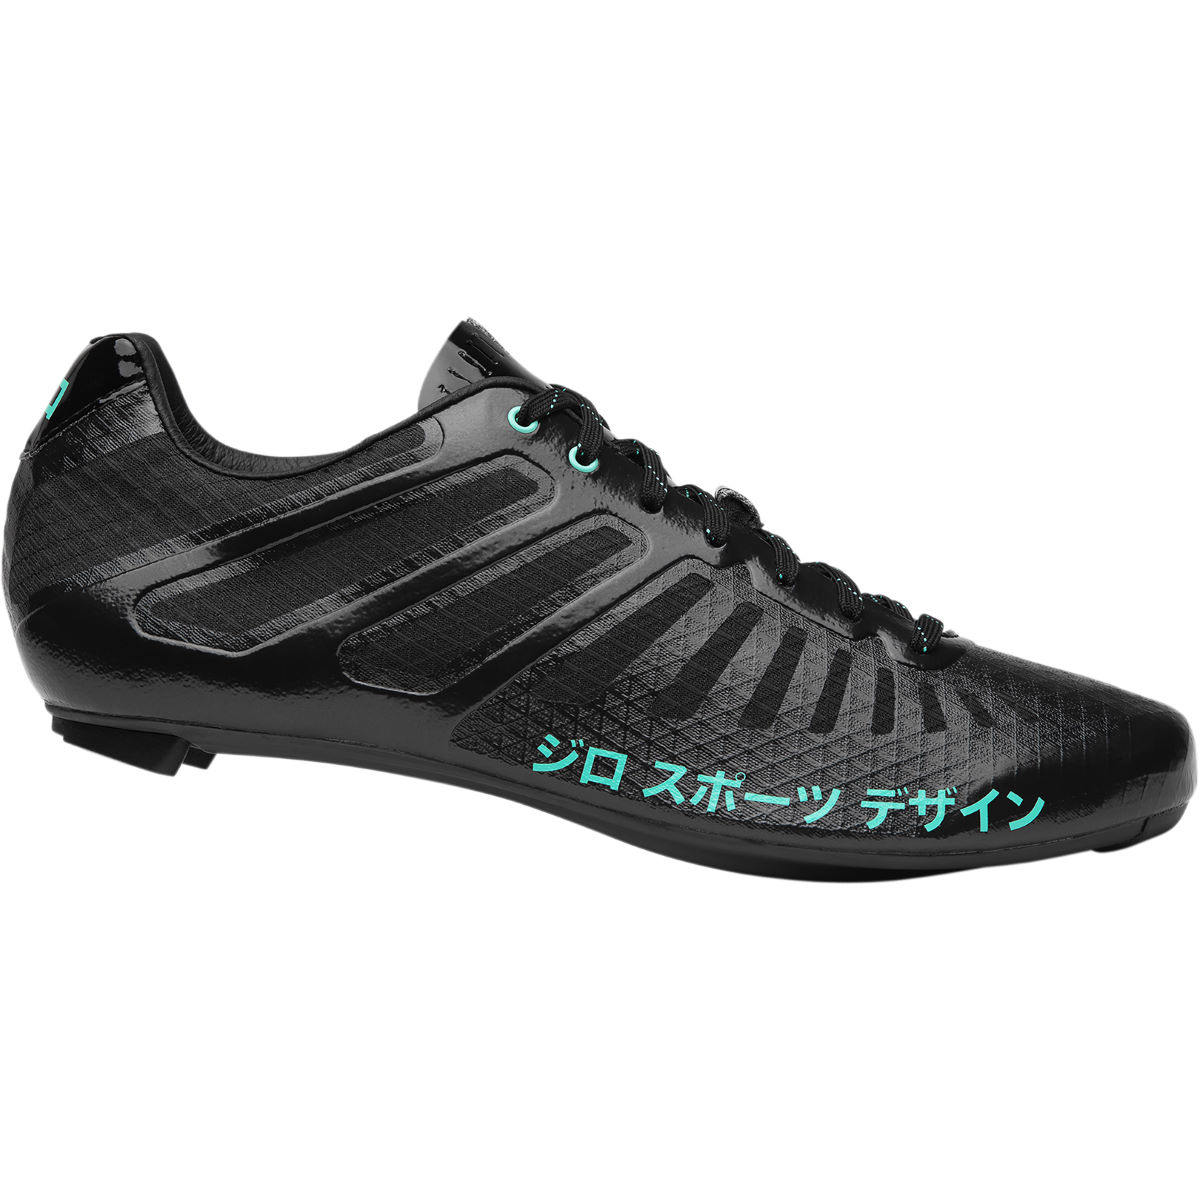 Giro Giro Studio Yasuda Empire SLX Road Shoes   Cycling Shoes